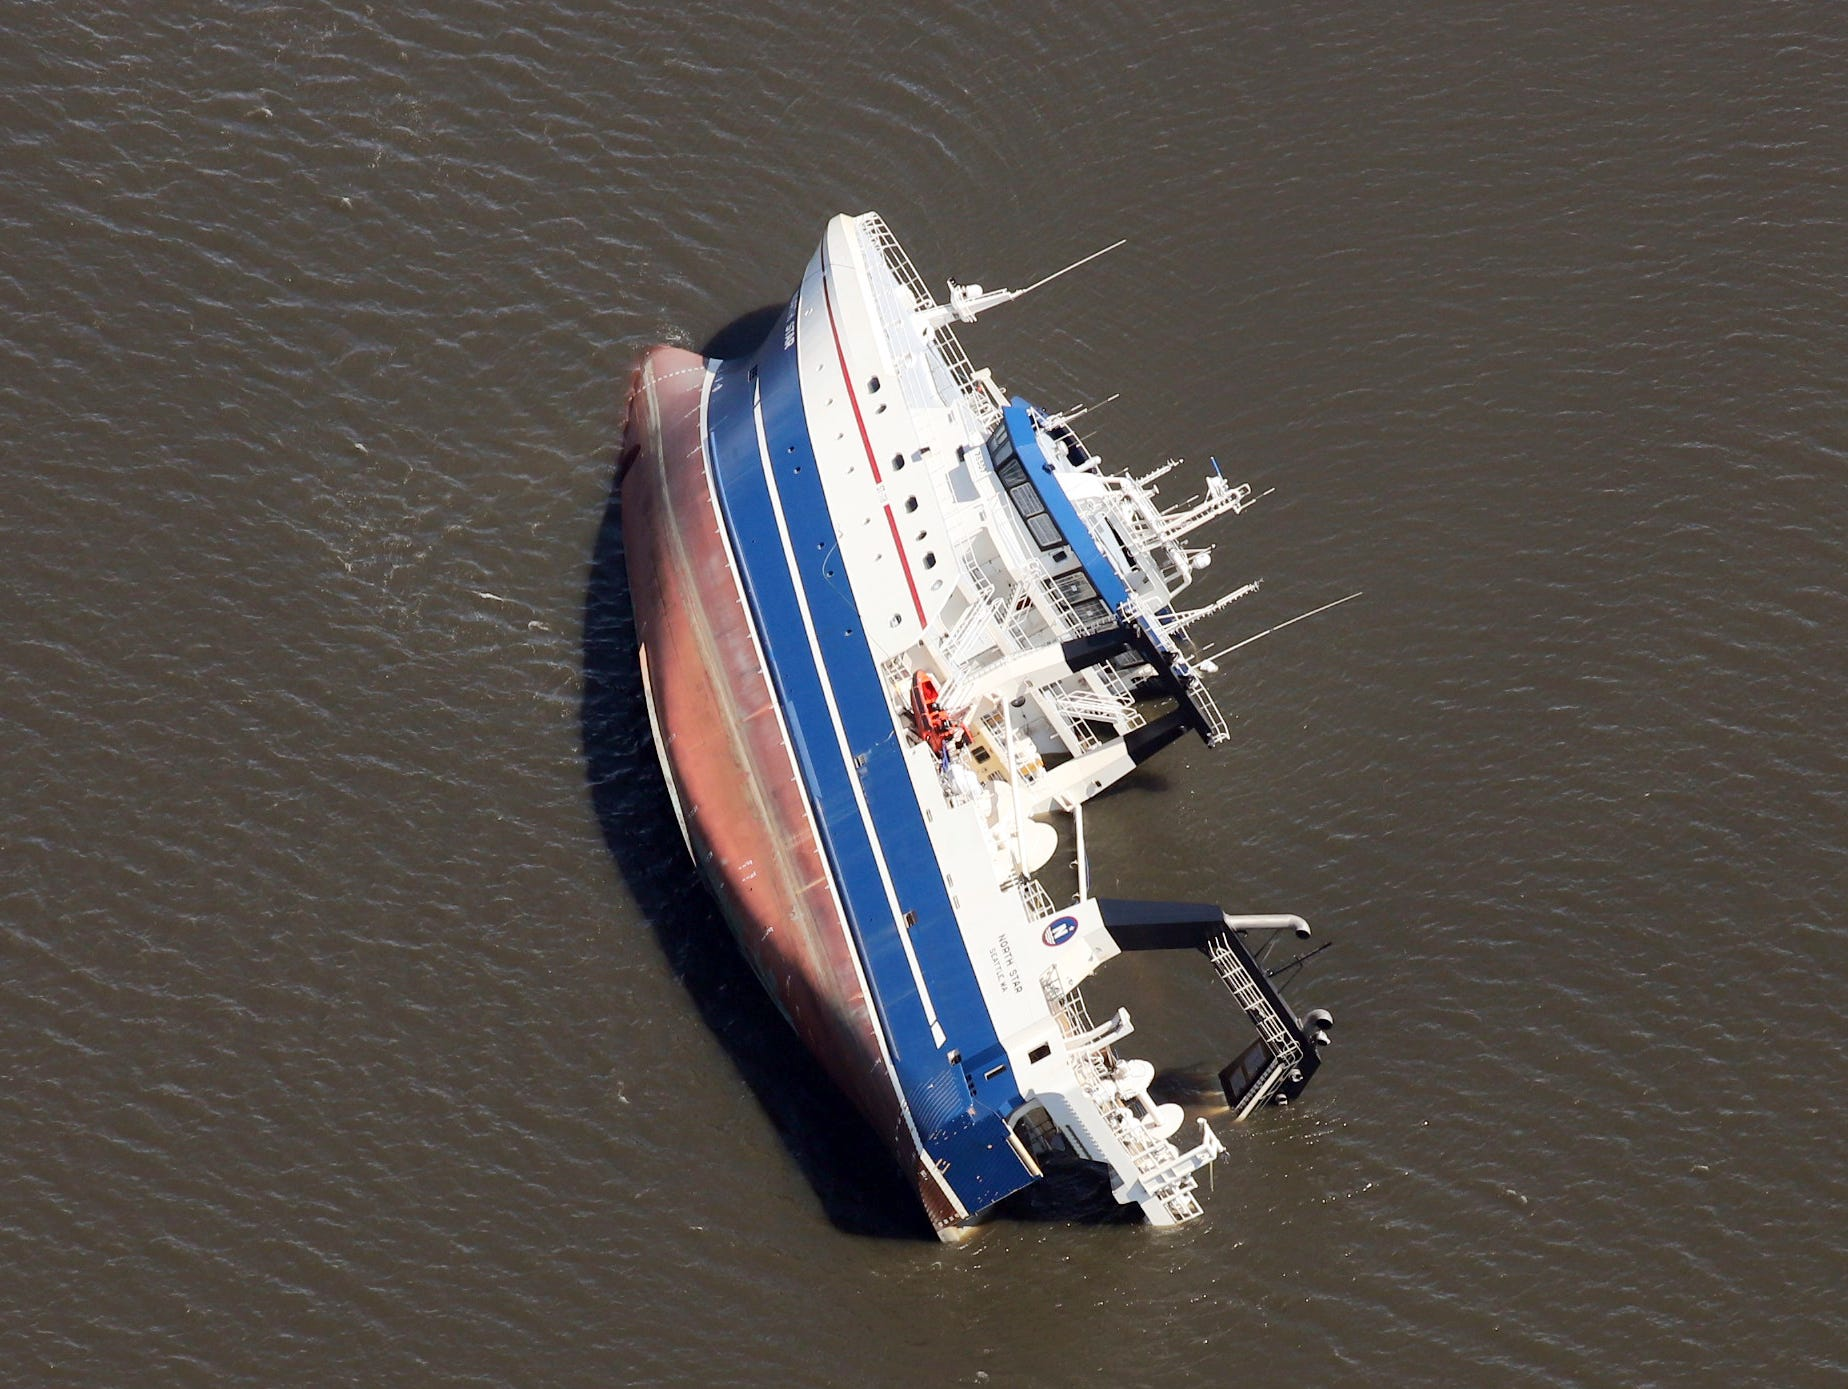 A large ship lists on its side in the St. Andrew Bay, at Panama City, Fla., Thursday, Oct. 11, 2018. The devastation inflicted by Hurricane Michael came into focus Thursday with rows upon rows of homes found smashed to pieces, and rescue crews began making their way into the stricken areas in hopes of accounting for hundreds of people who may have stayed behind.